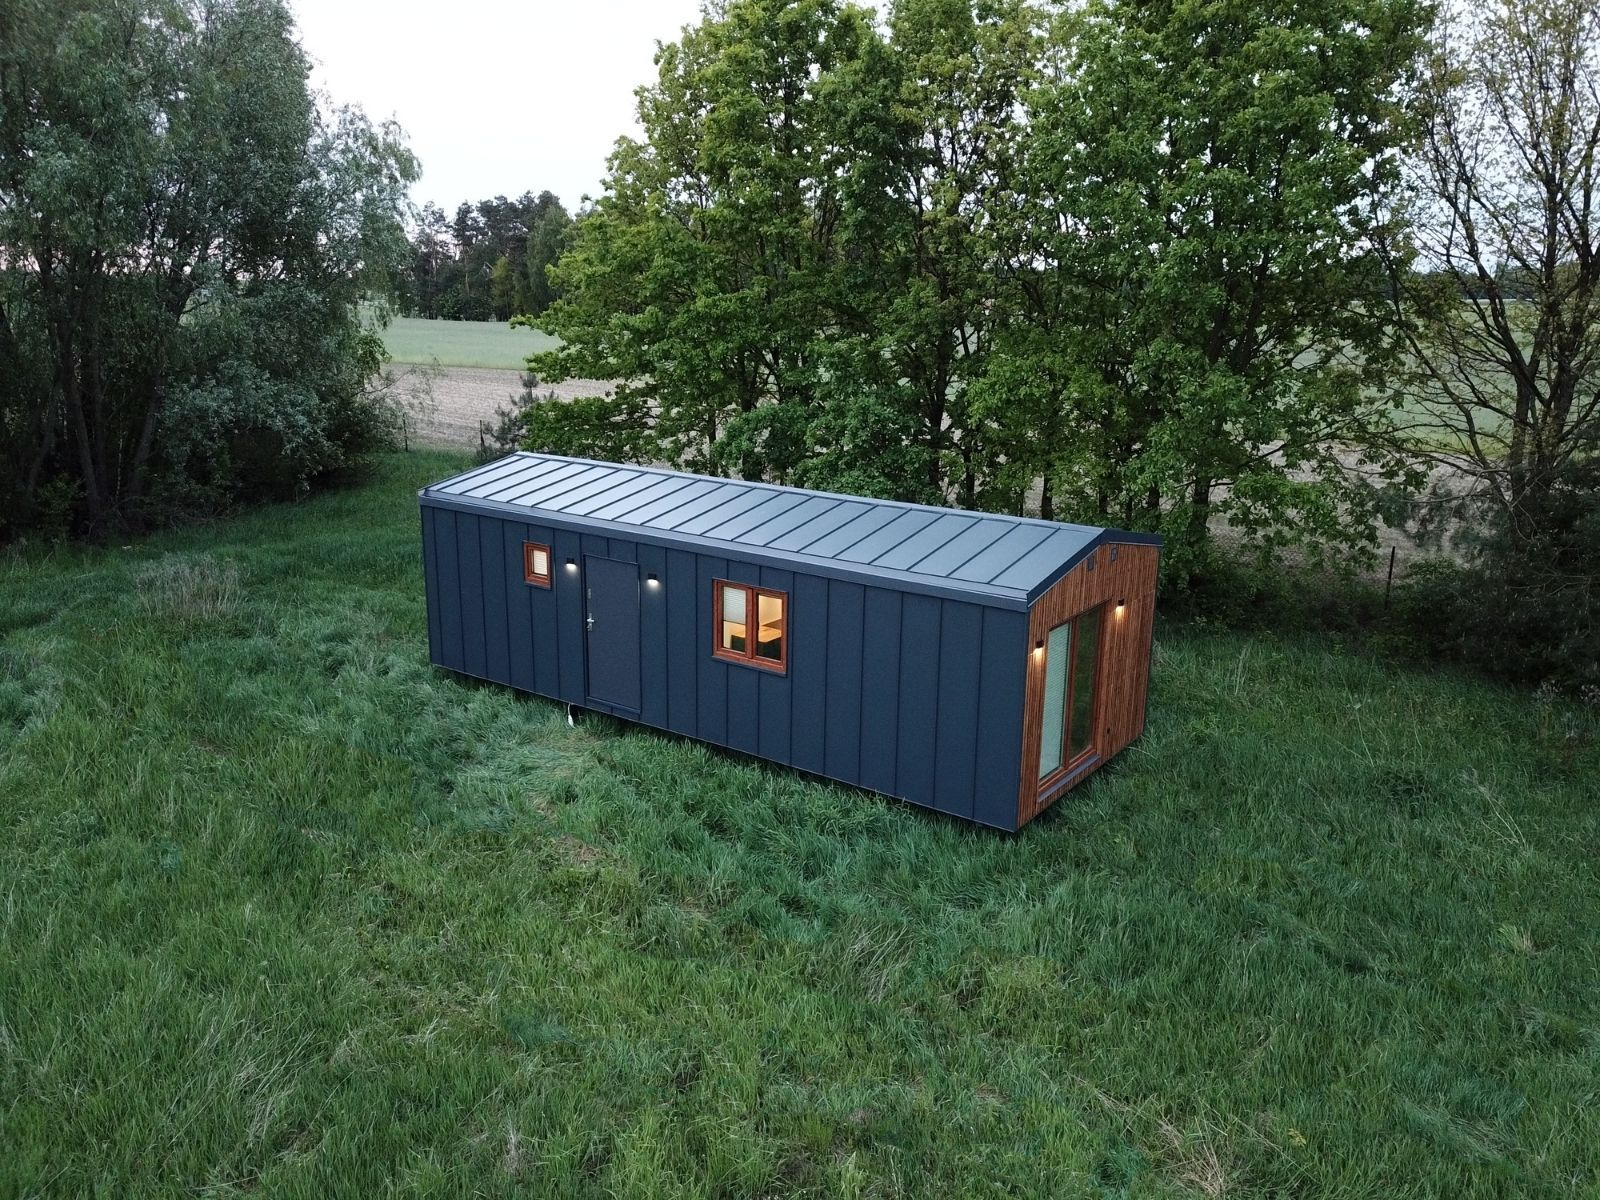 JPJ Mobile House - Producent domów mobilnych (6)